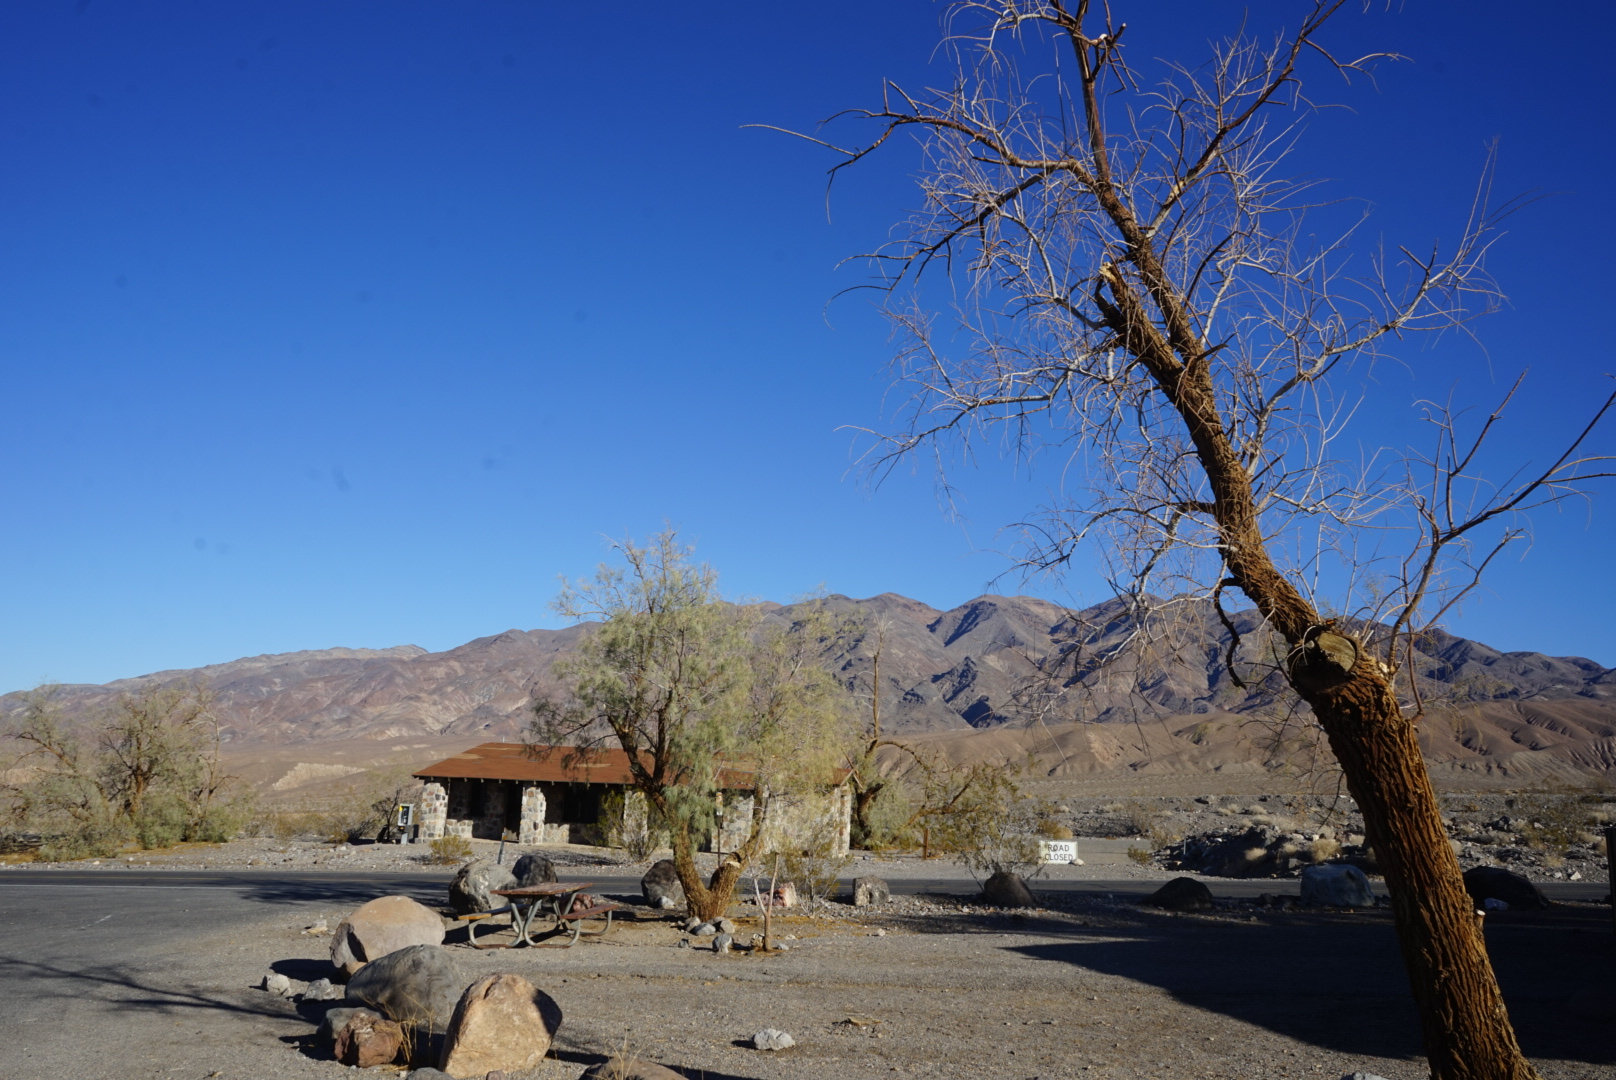 Restrooms are few and far between in Death Valley, everyone of them though we expected a cowboy and horse to arrive at any minute.